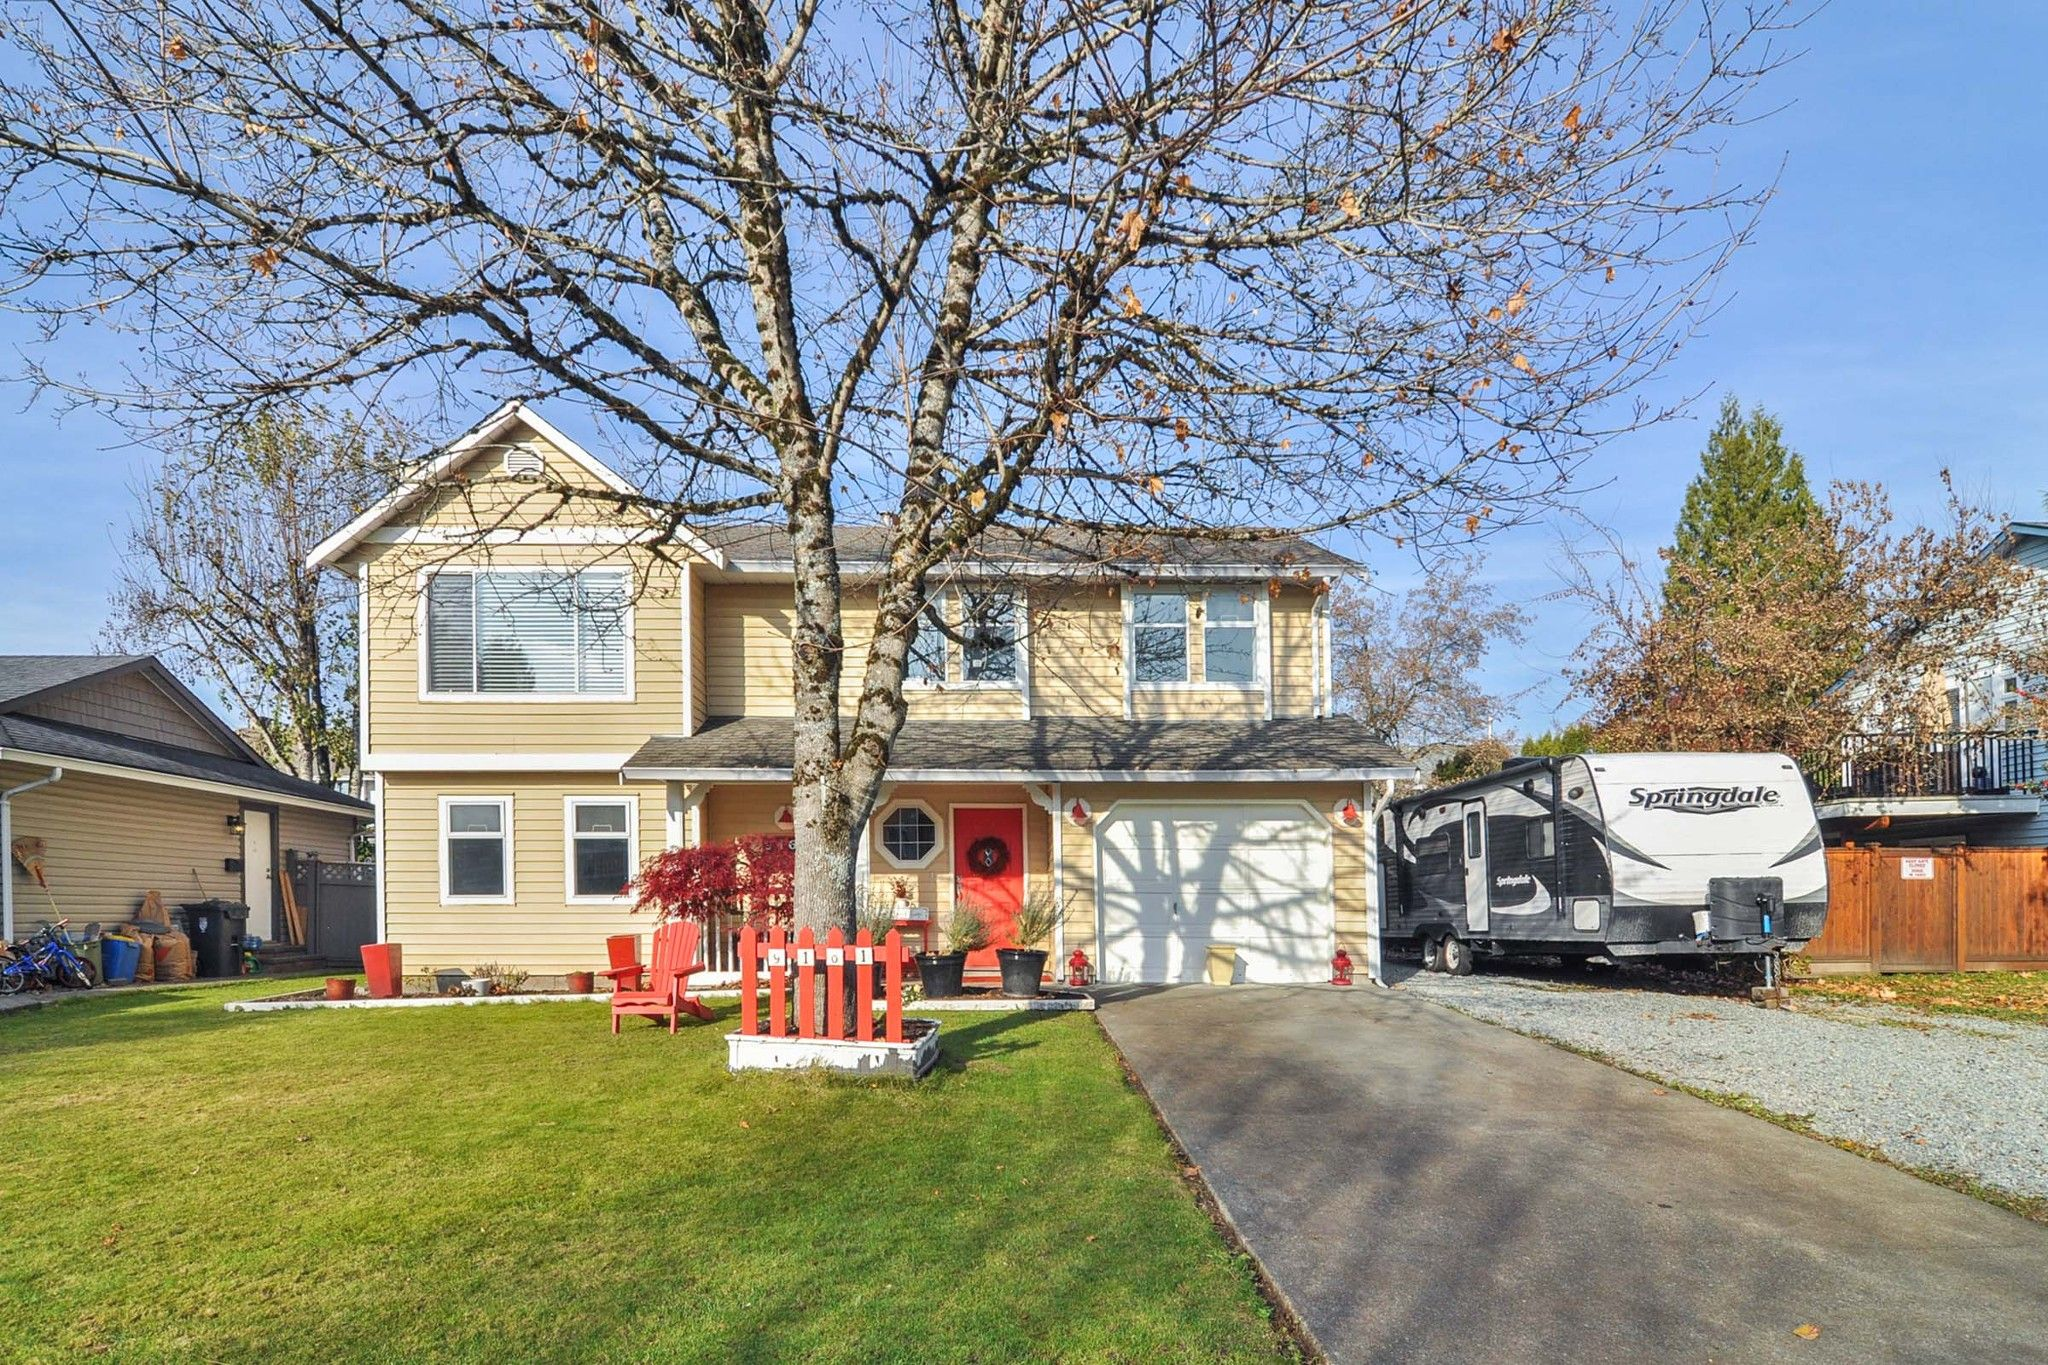 Main Photo: 9161 212A Place in Langley: Walnut Grove House for sale : MLS®# R2417929